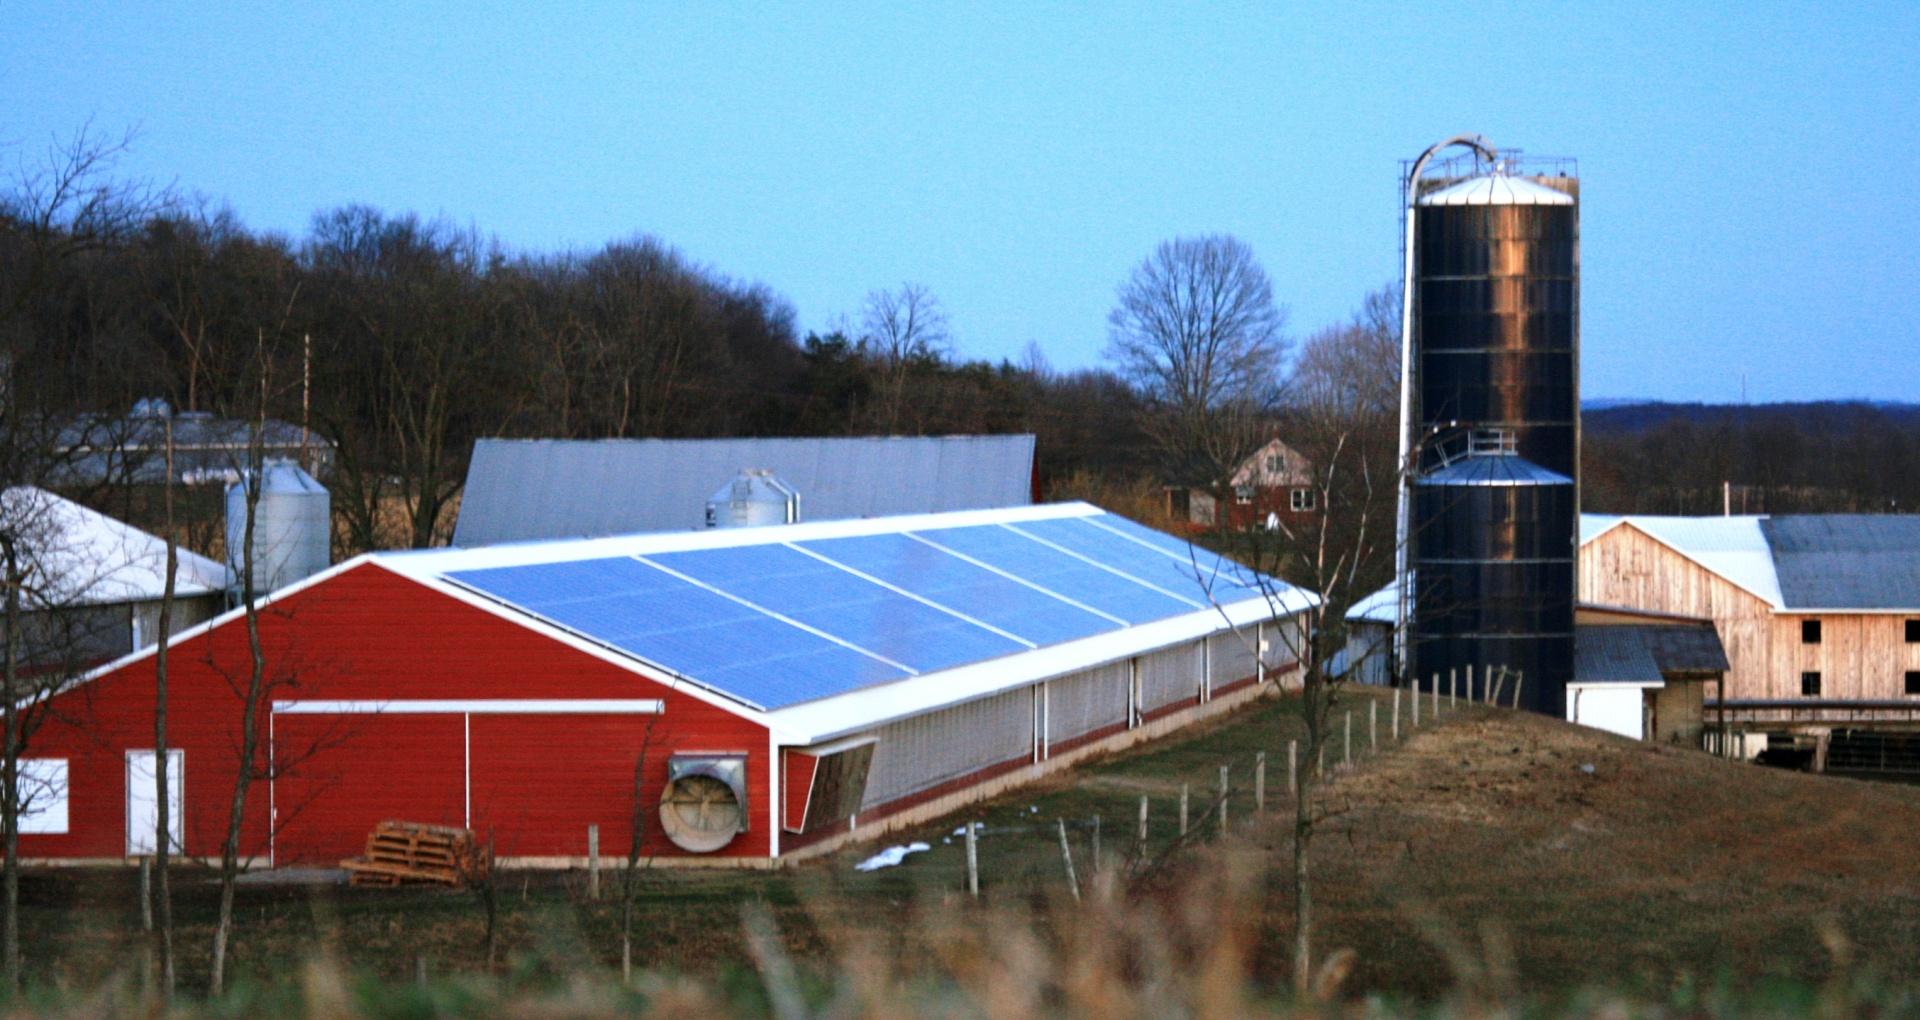 At Focus Farm, a turkey farm in Lewisburg, a rooftop solar array installed by Energy Independent Solutions helped create jobs in a rural part of Central Pennsylvania. (Photo courtesy of EIS Solar)